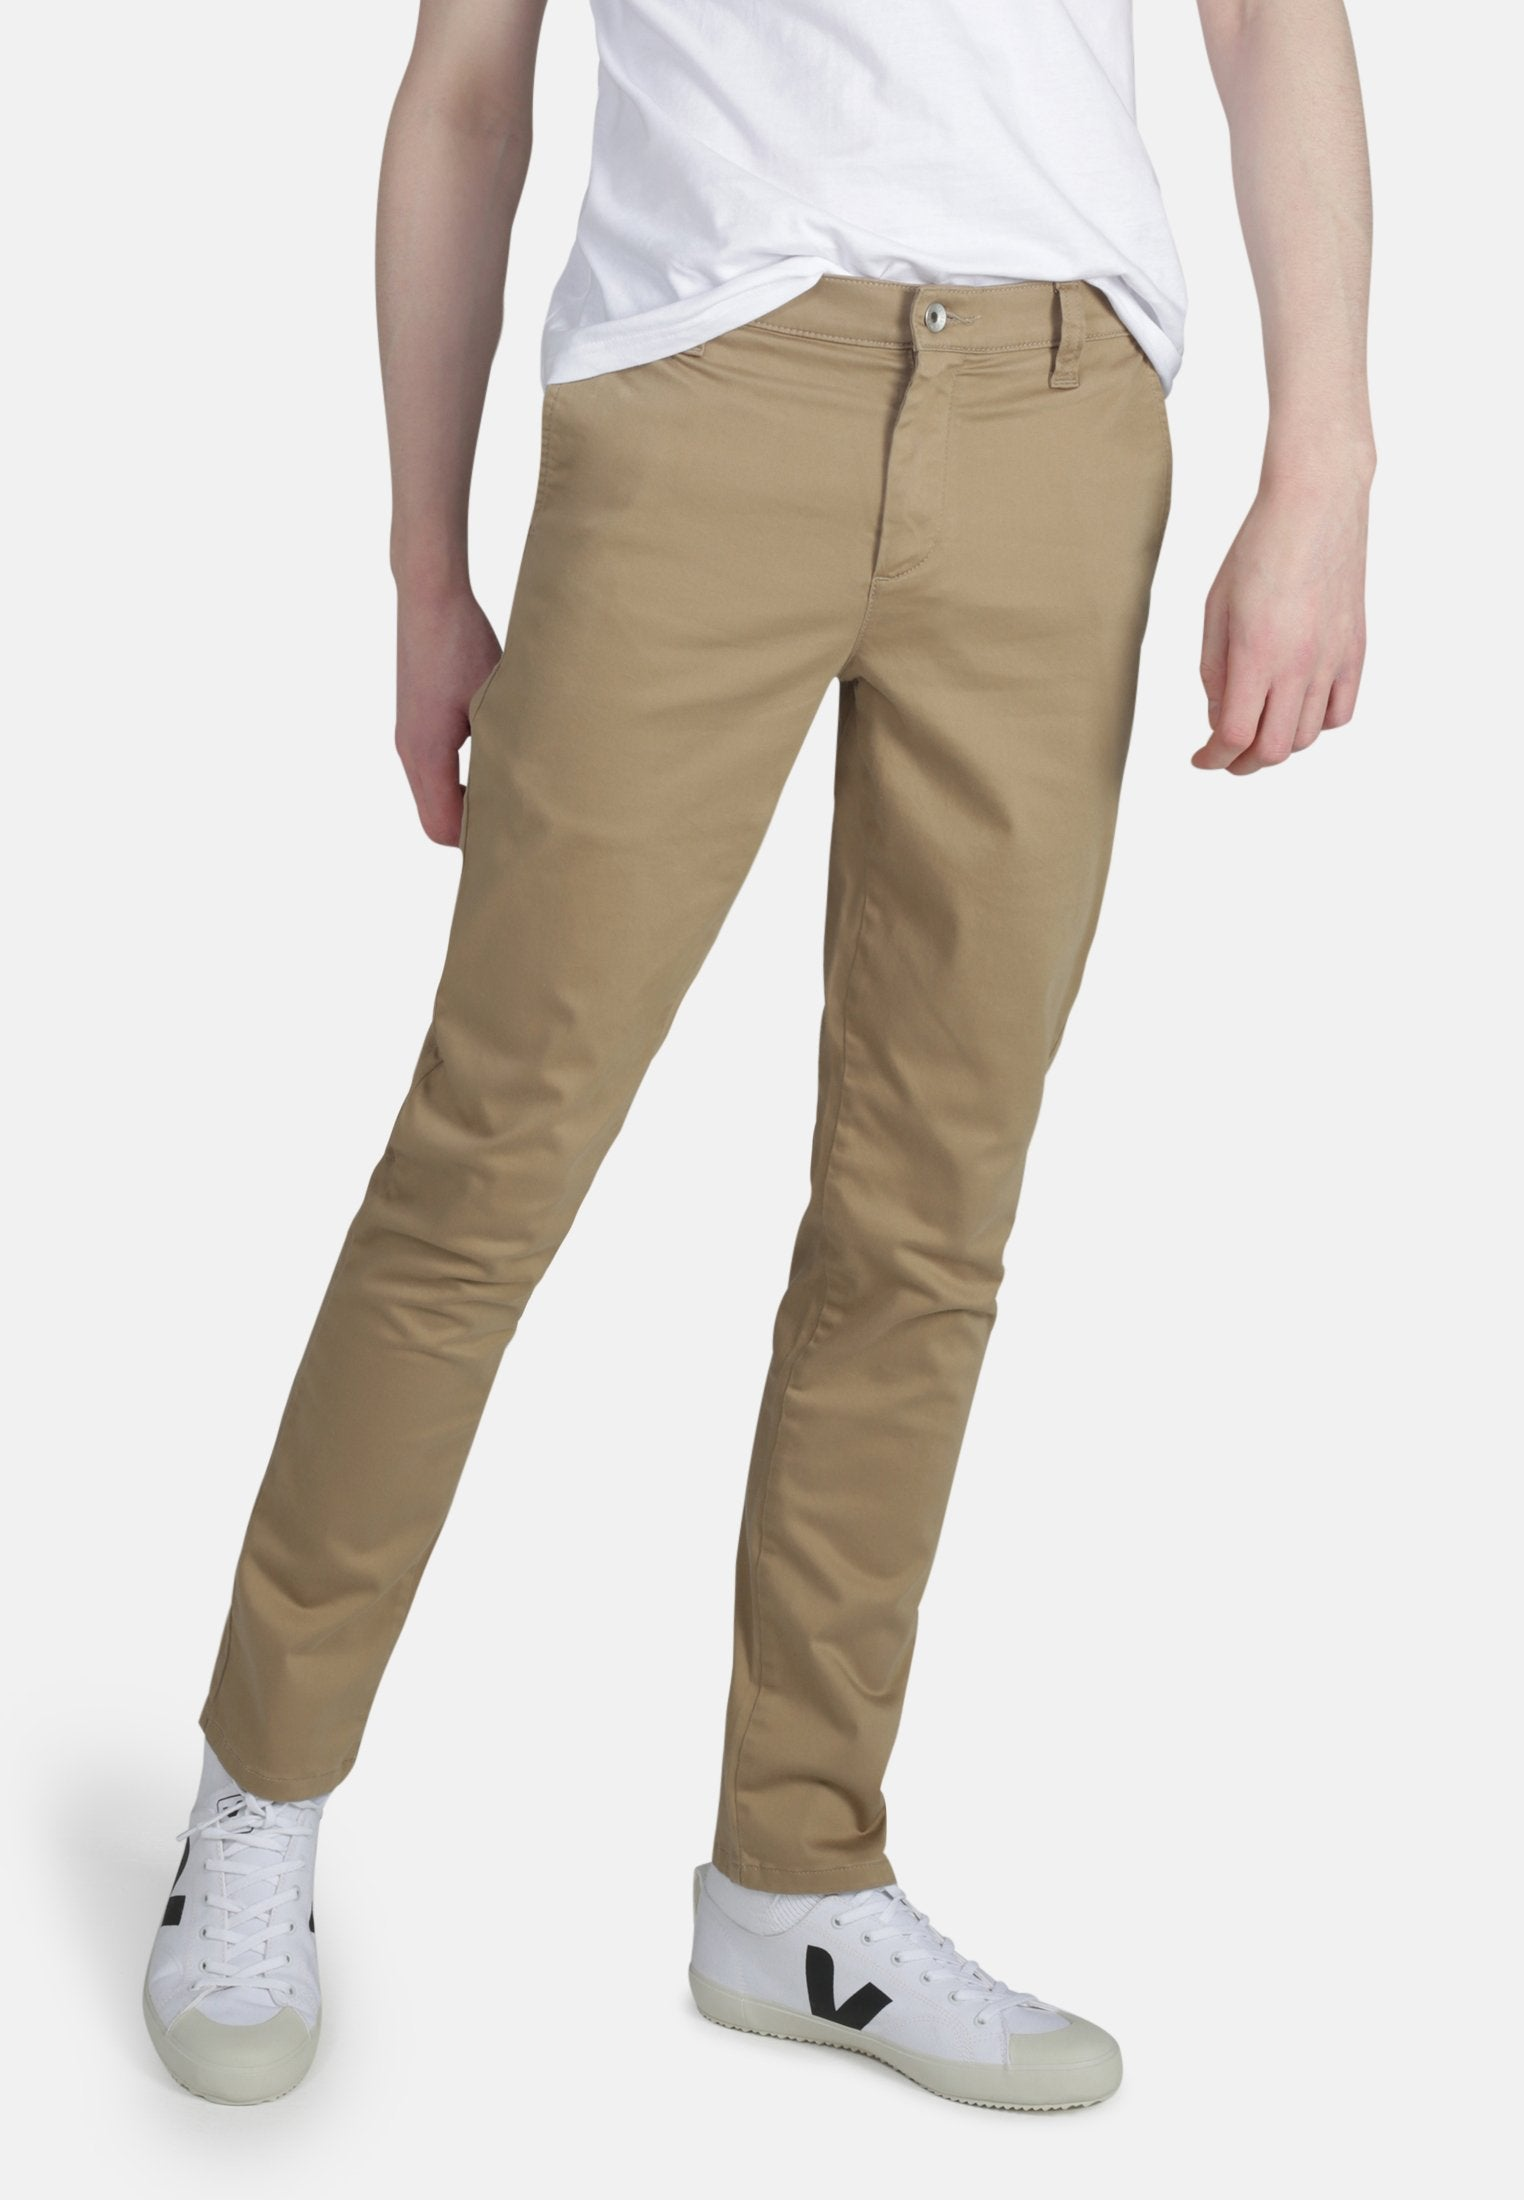 Jeans - Tan Organic Cotton Chino